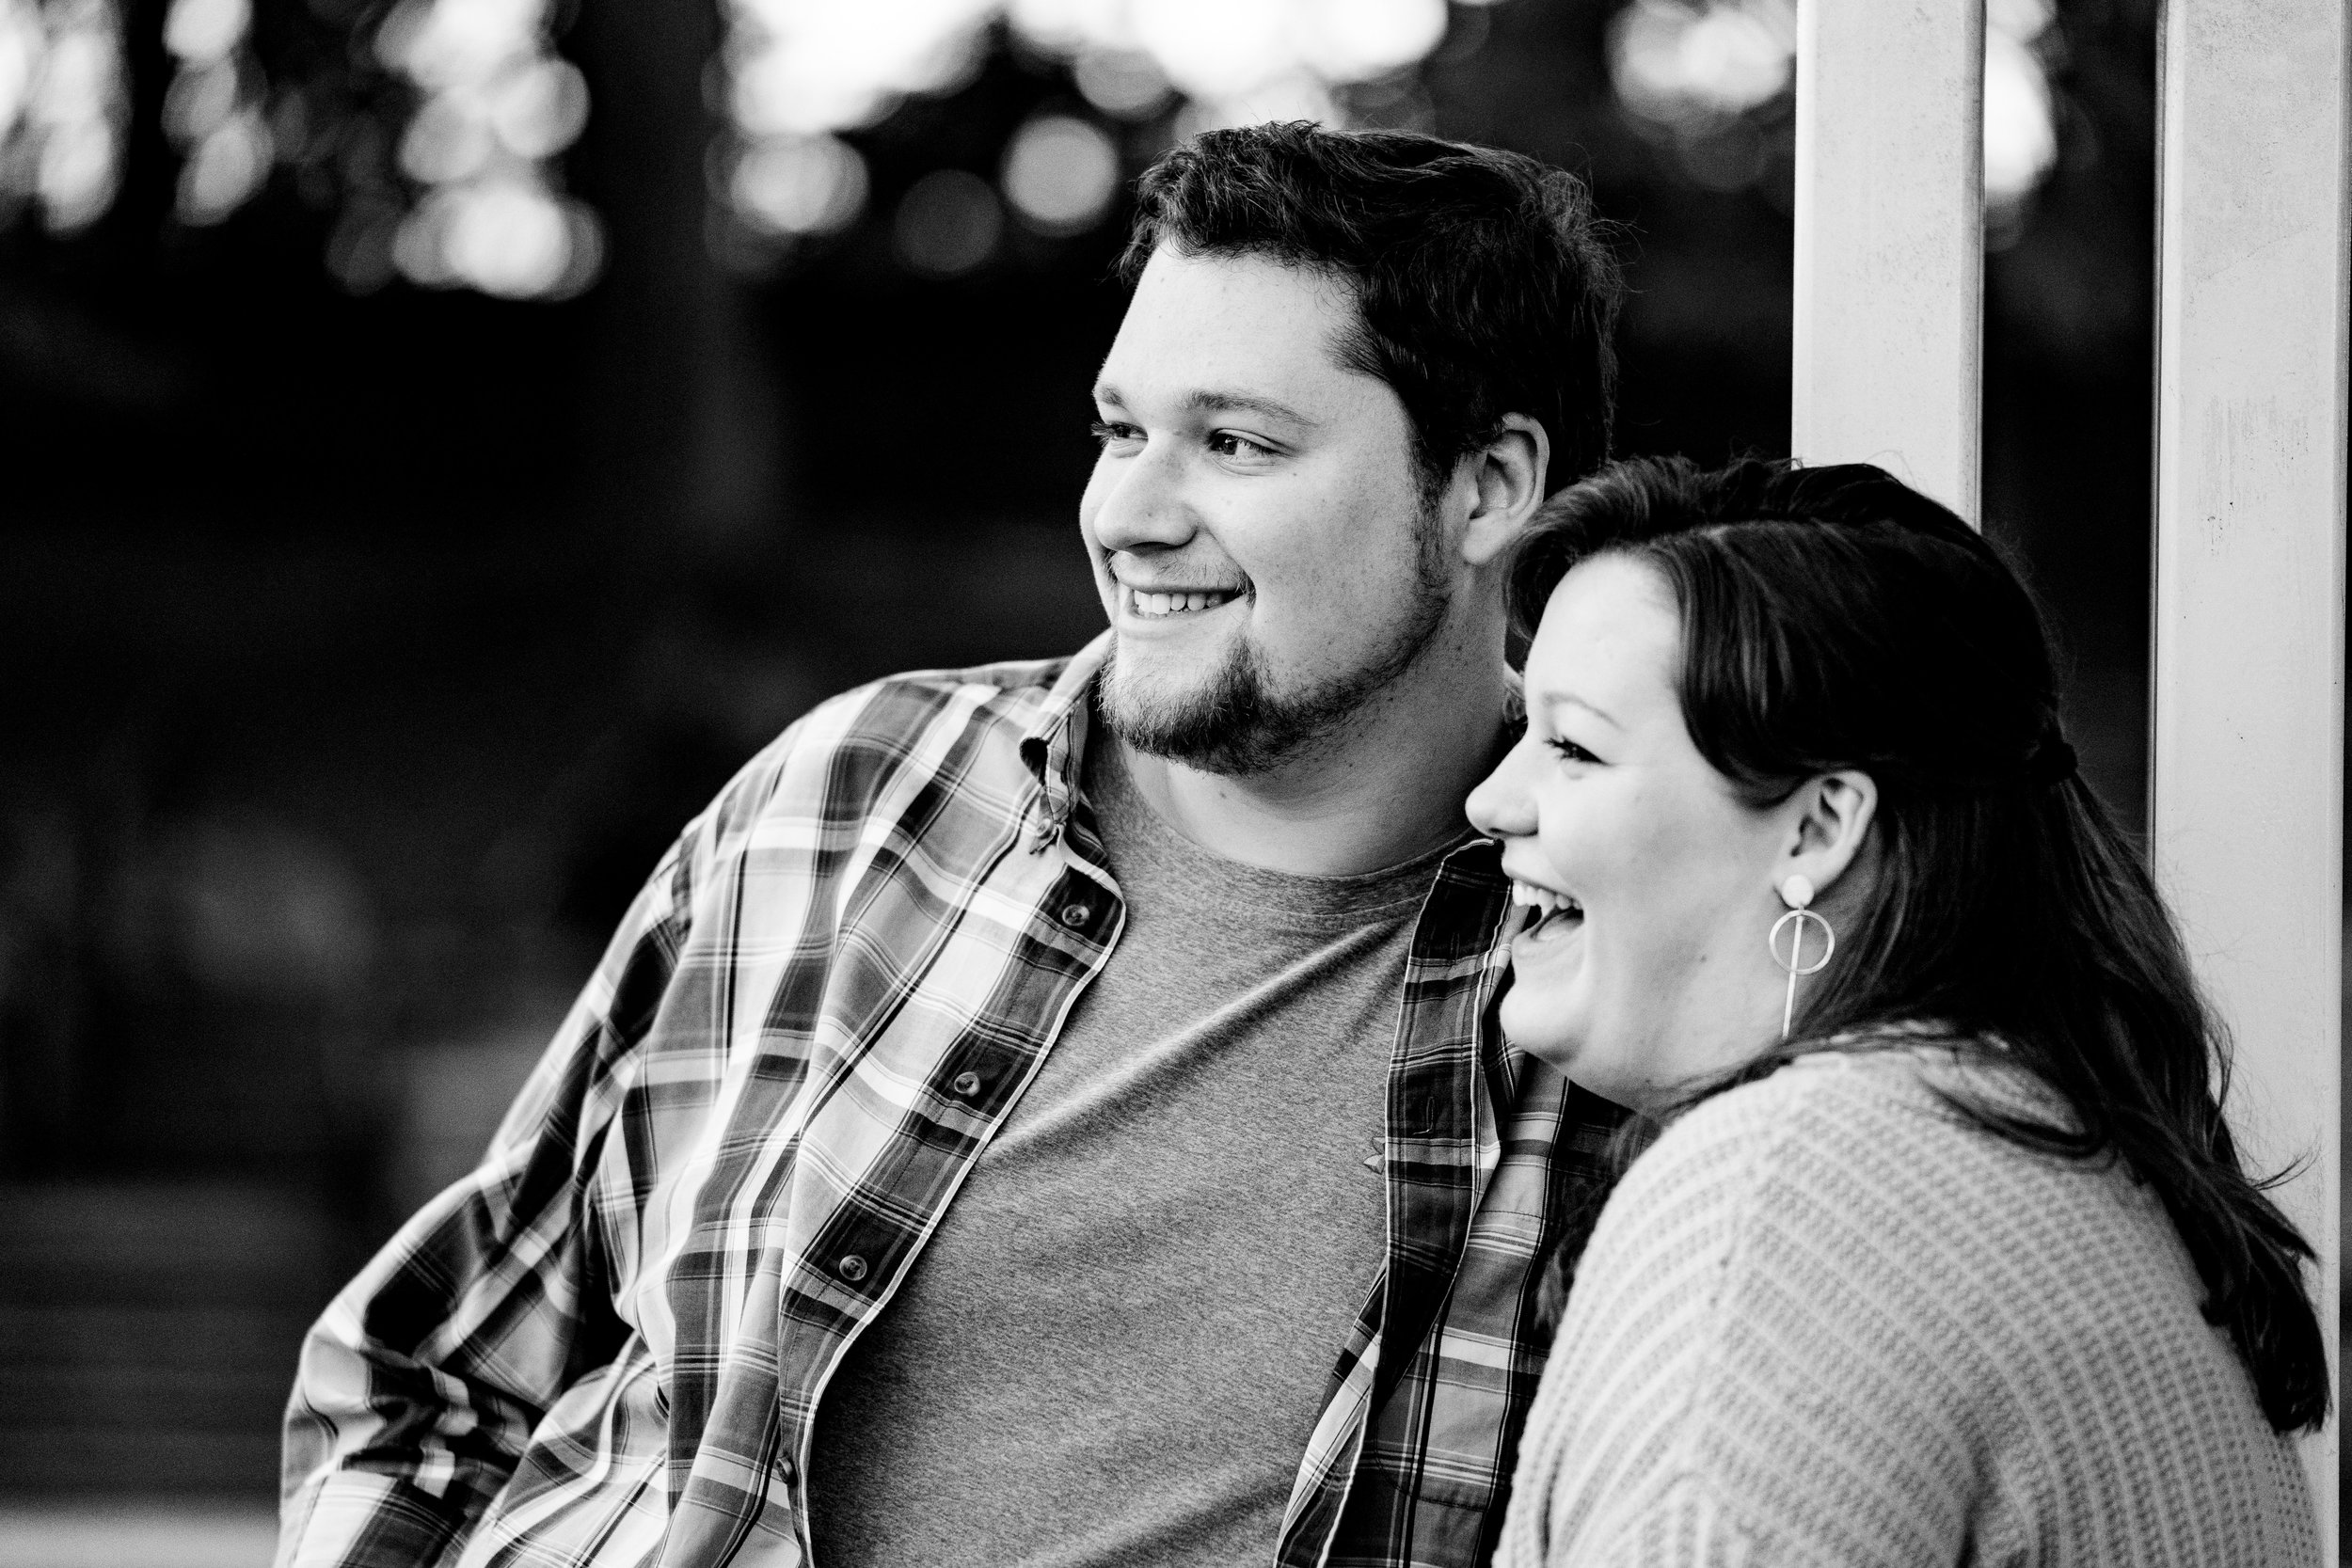 Kaitlyn + Zane | Engagement Session in Downtown Greer, SC